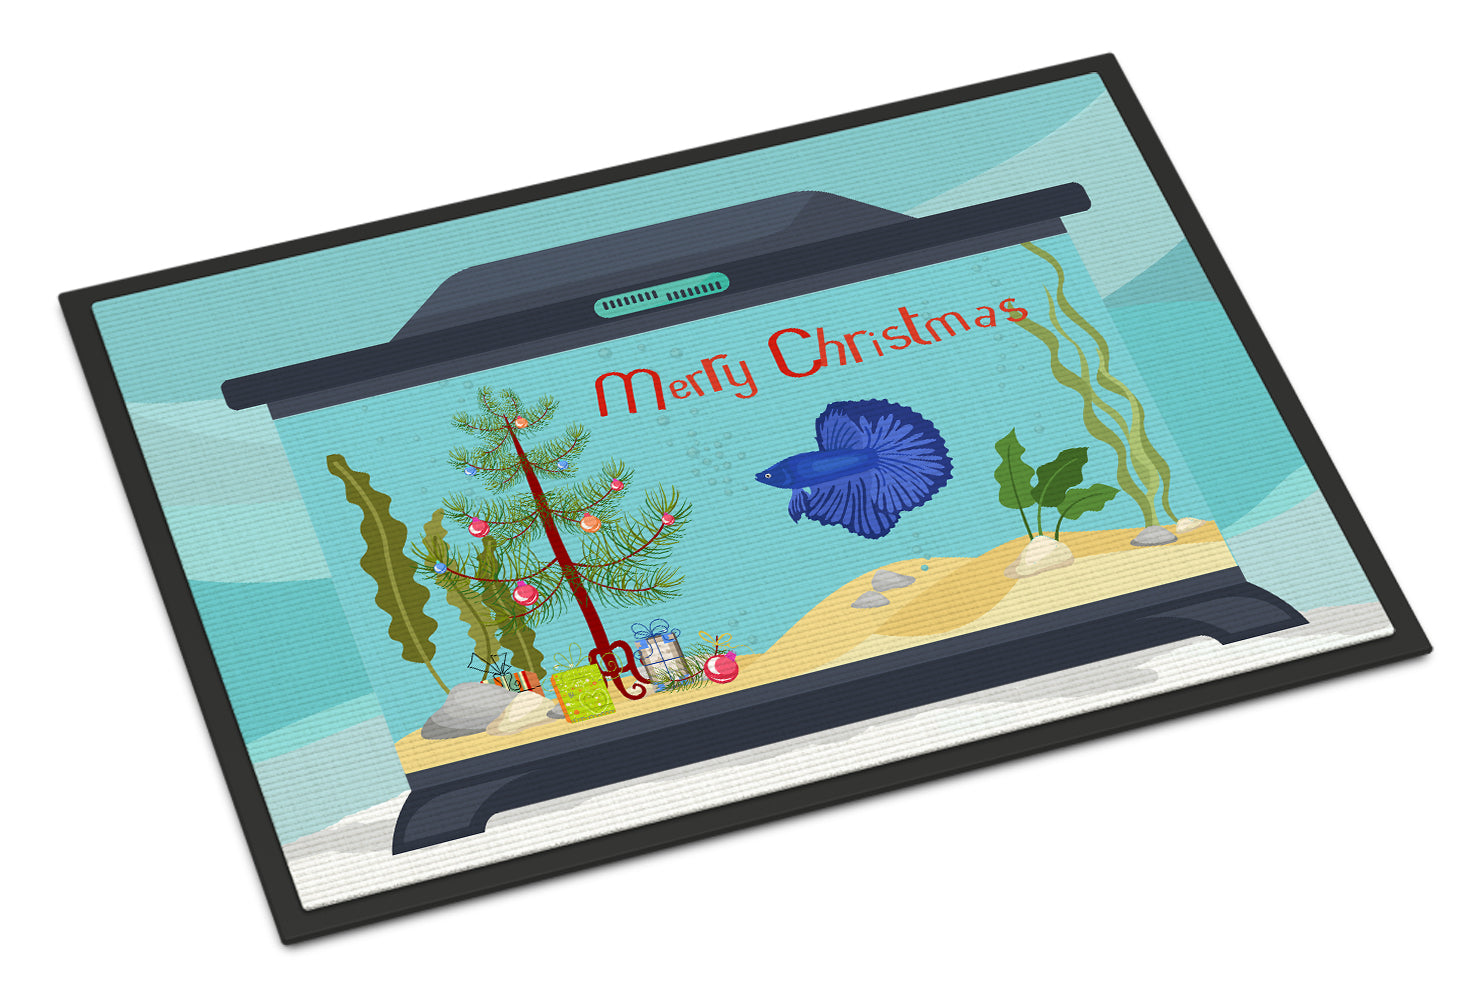 Delta Tail Betta Fish Merry Christmas Indoor or Outdoor Mat 18x27 CK4507MAT by Caroline's Treasures